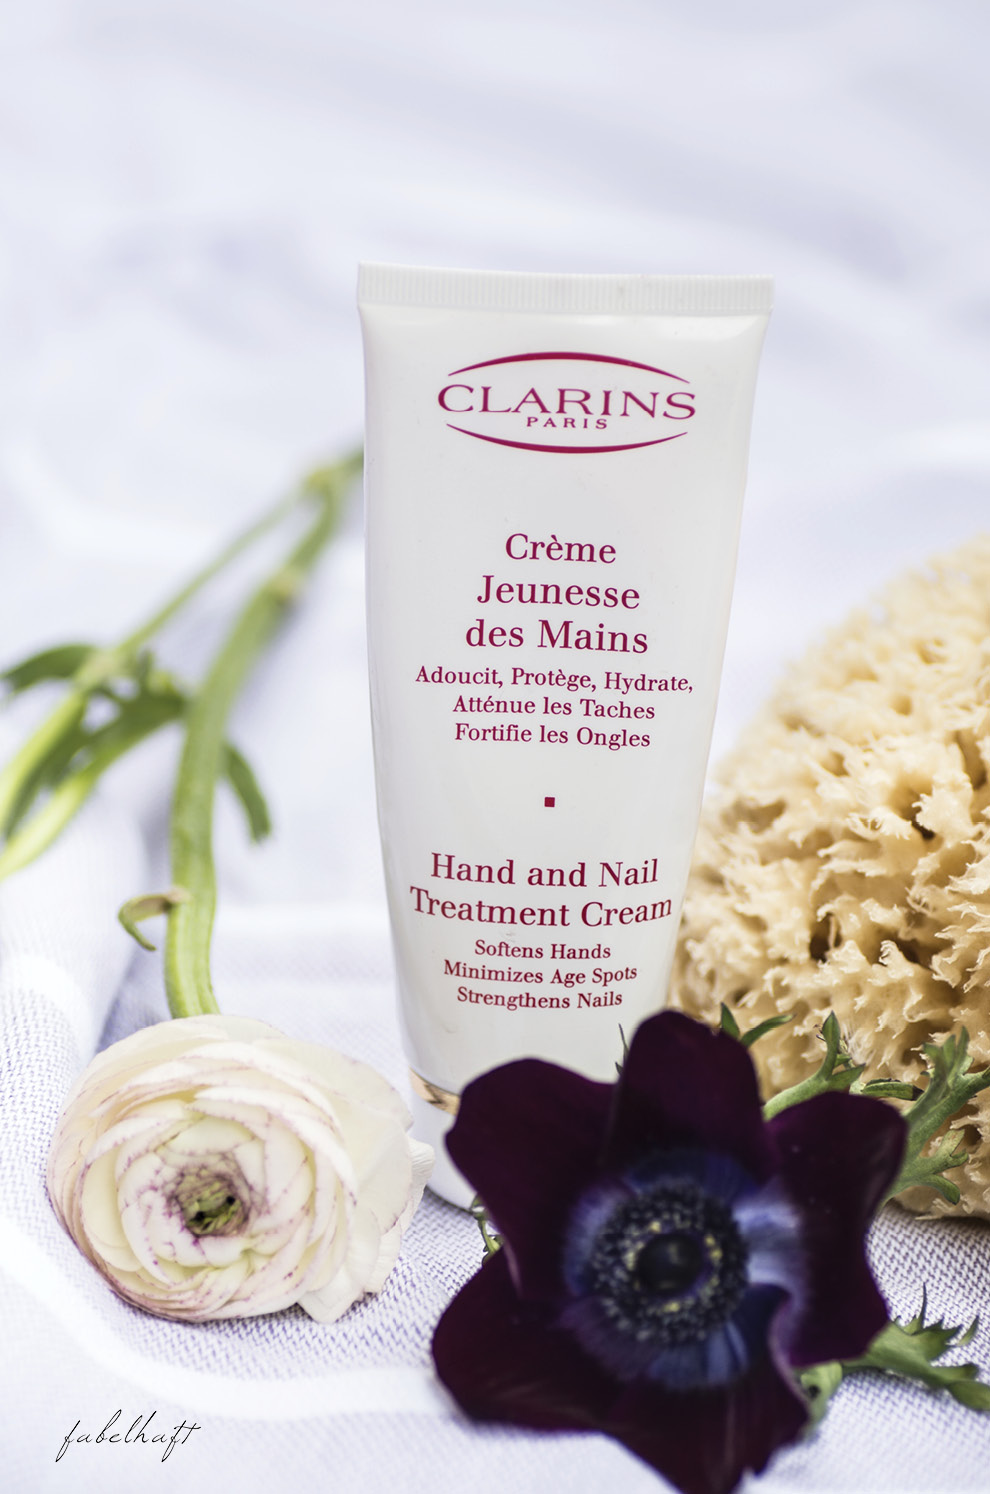 Clarins Paris Handcreme Beauty Wellness Spa